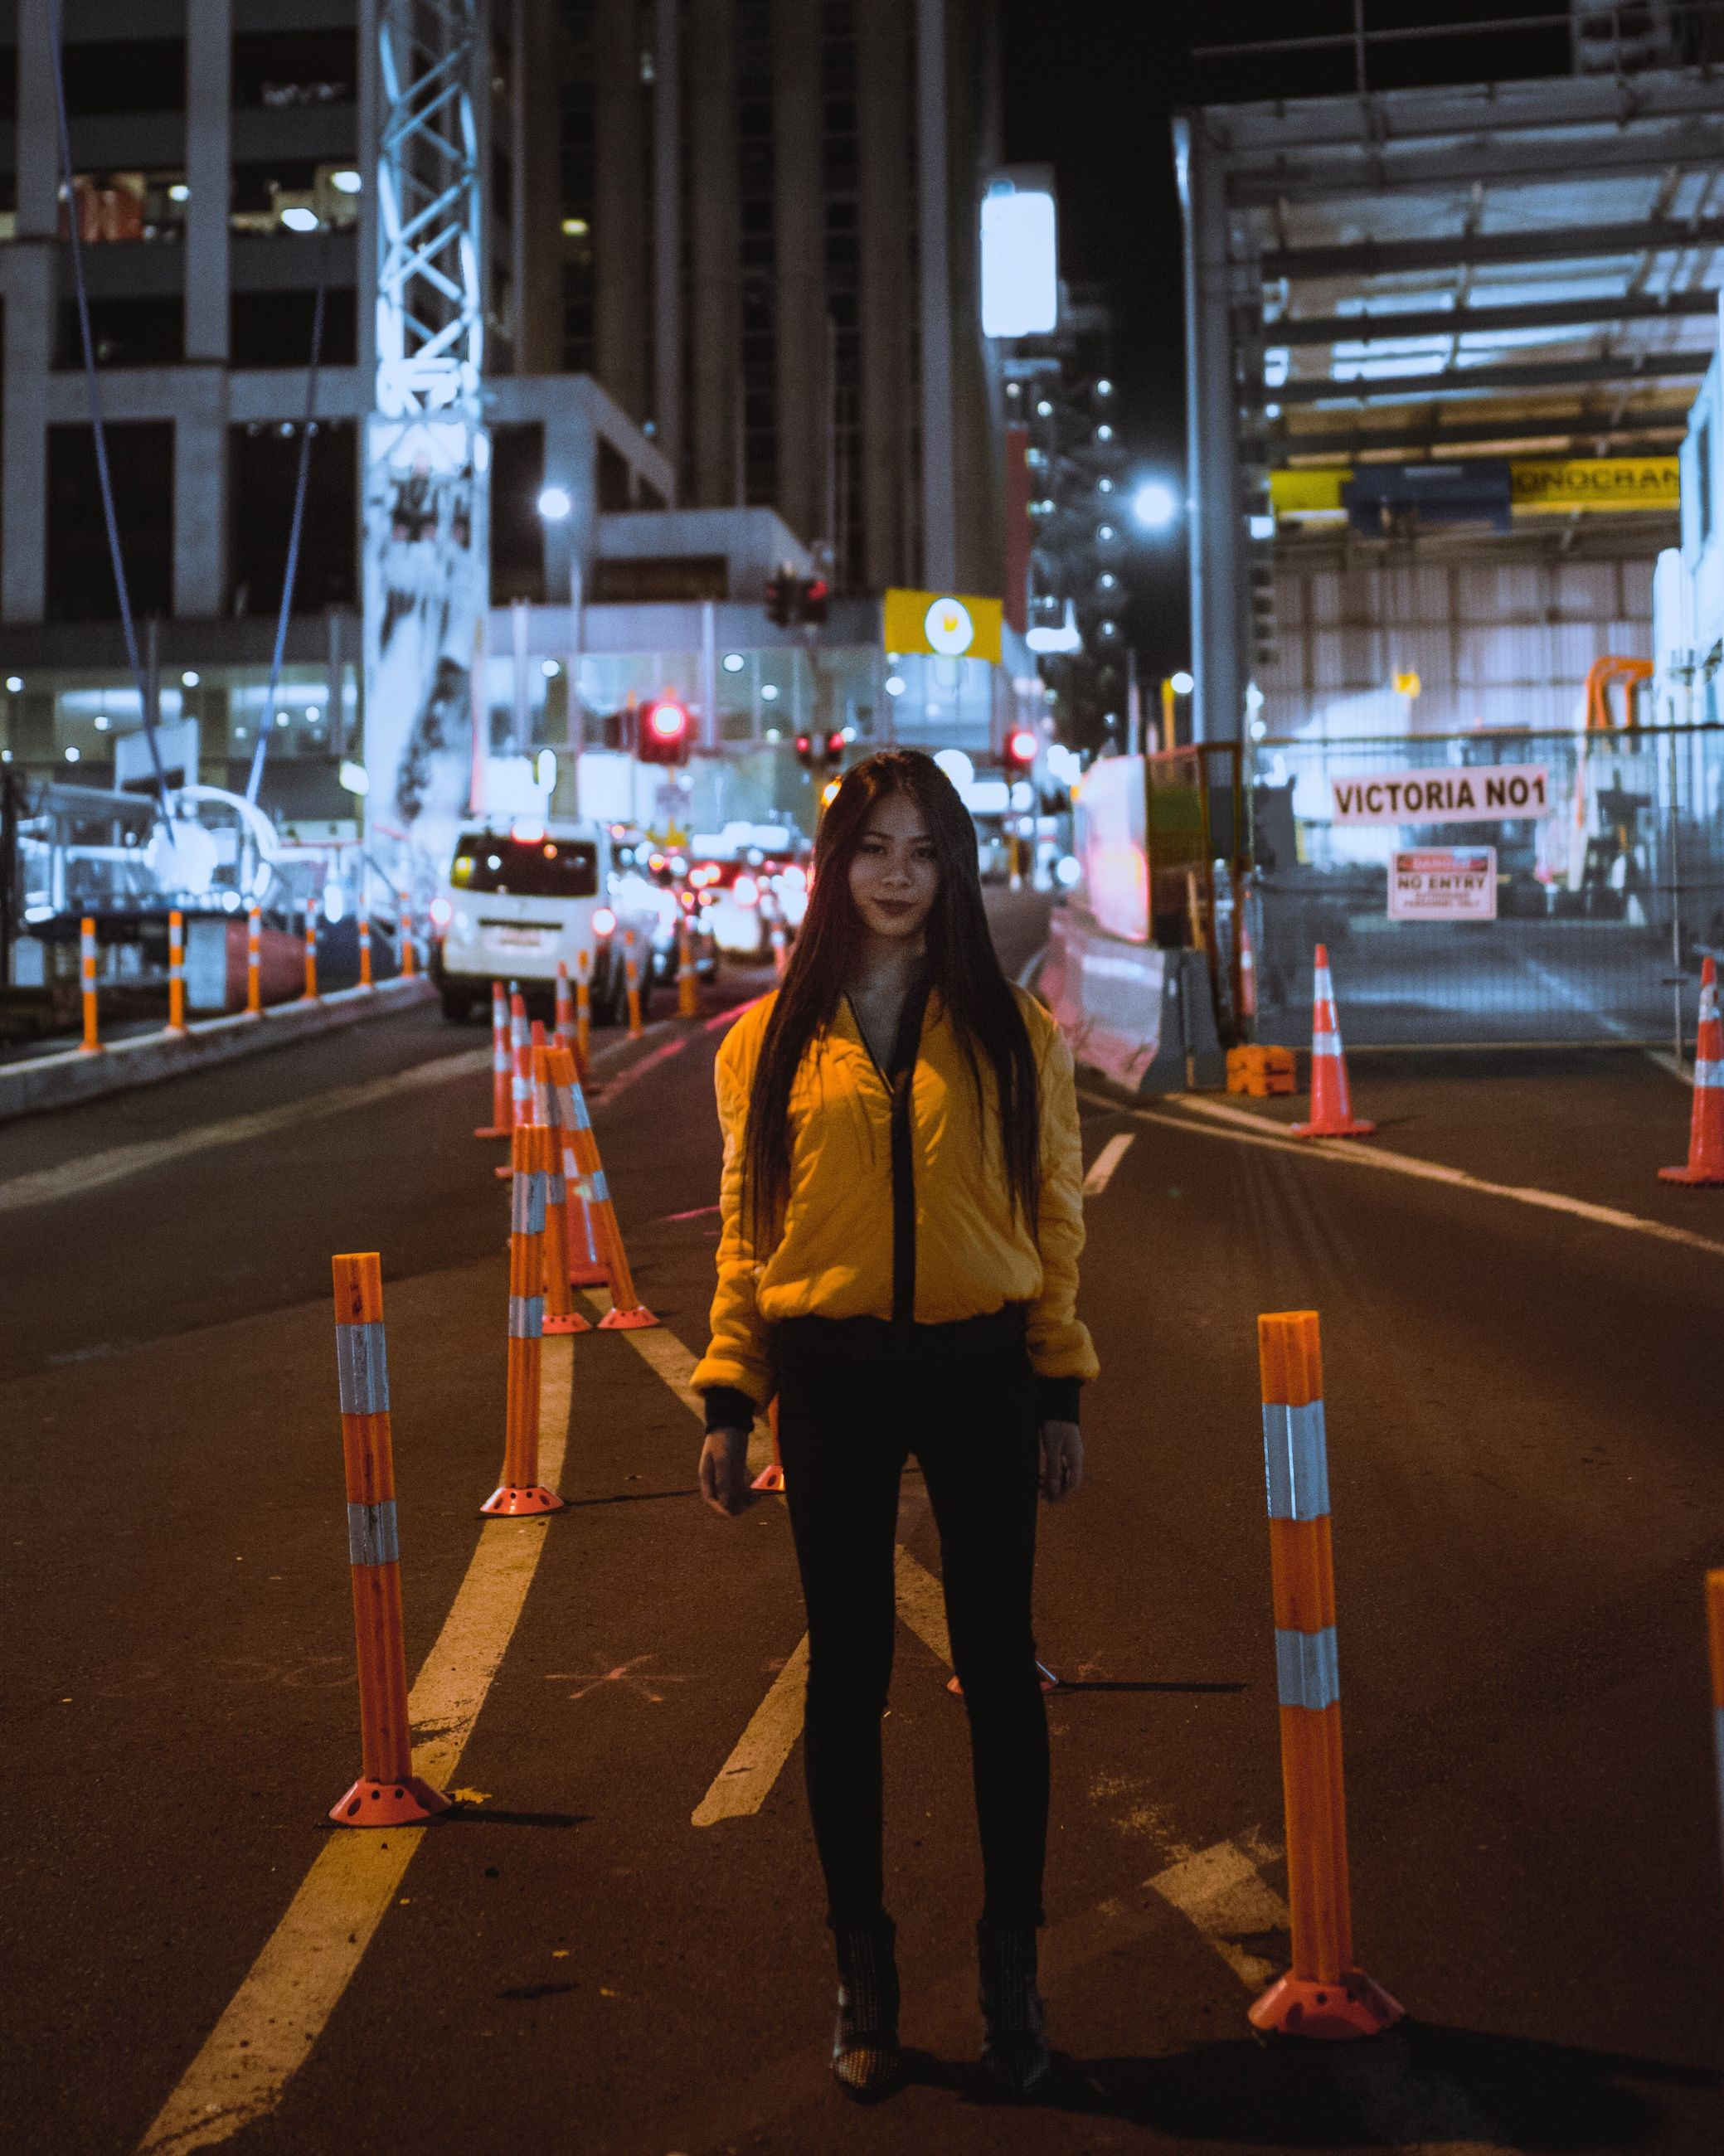 night, full length, illuminated, city, one person, one woman only, standing, city life, real people, only women, outdoors, people, warm clothing, women, adults only, building exterior, adult, one young woman only, technology, cityscape, young adult, bus stop